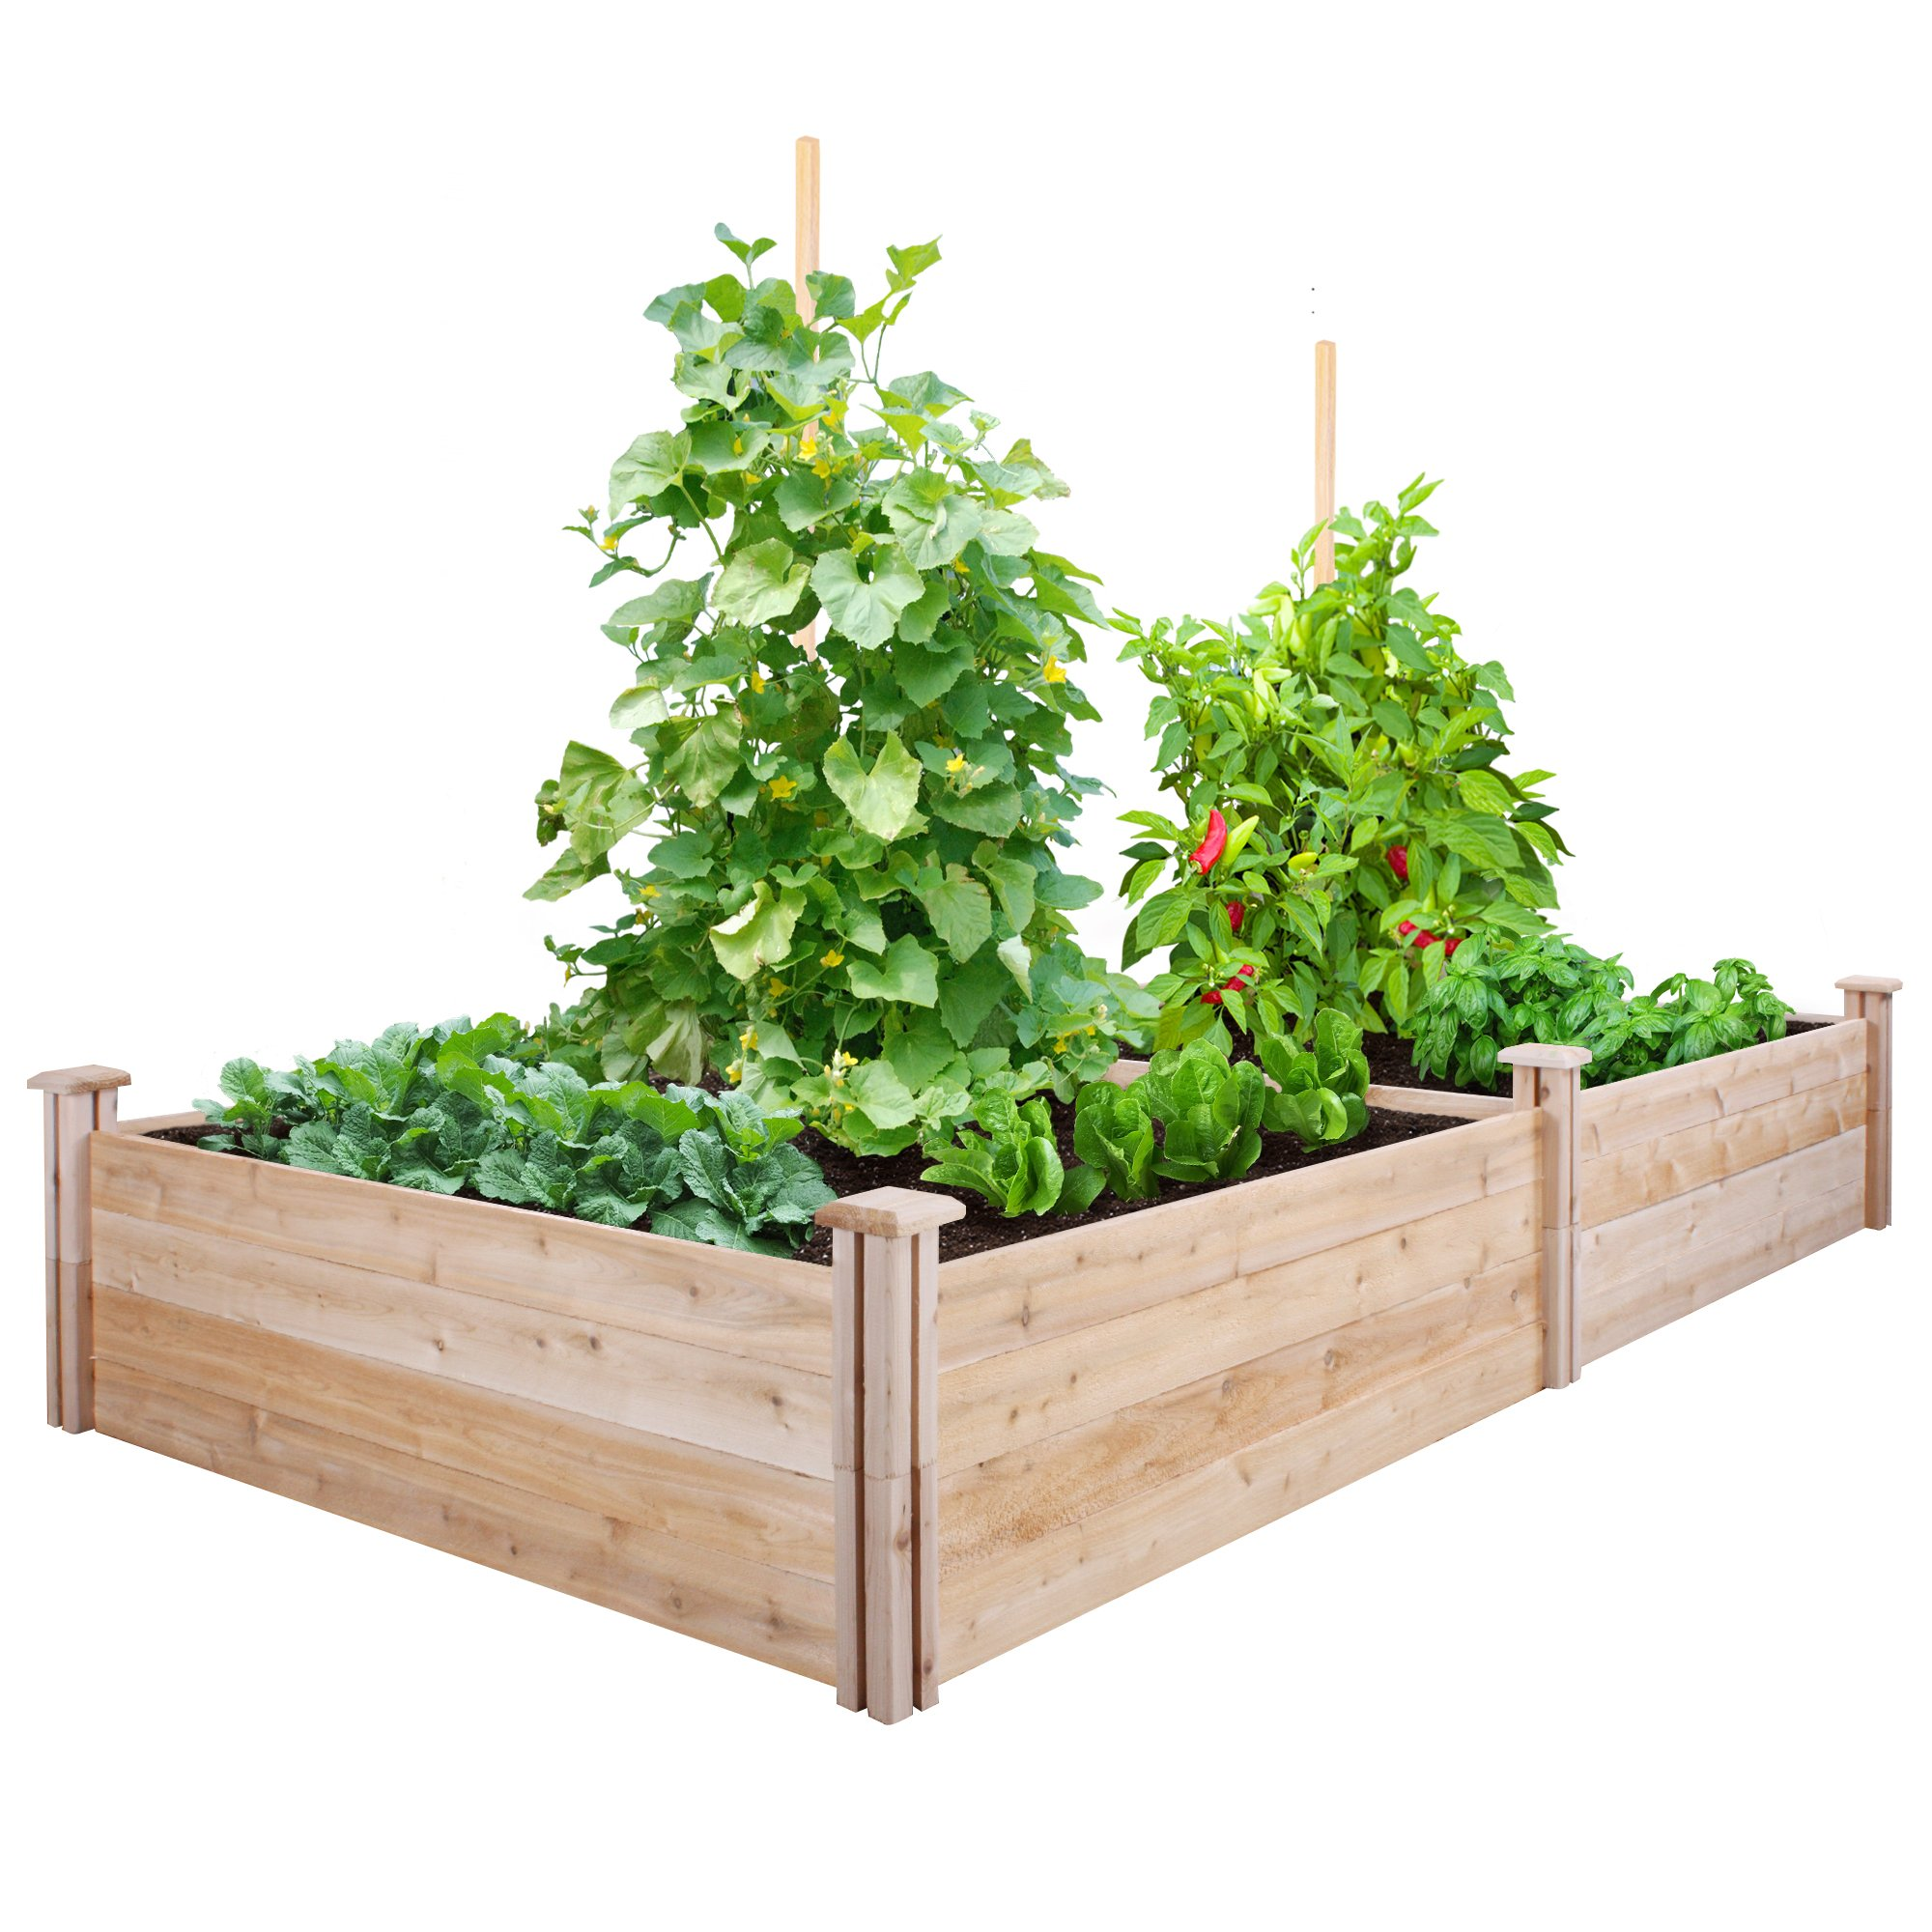 Greenes Fence Cedar Raised Garden Kit 4 Ft. X 8 Ft. X 14 In. by Greenes Fence